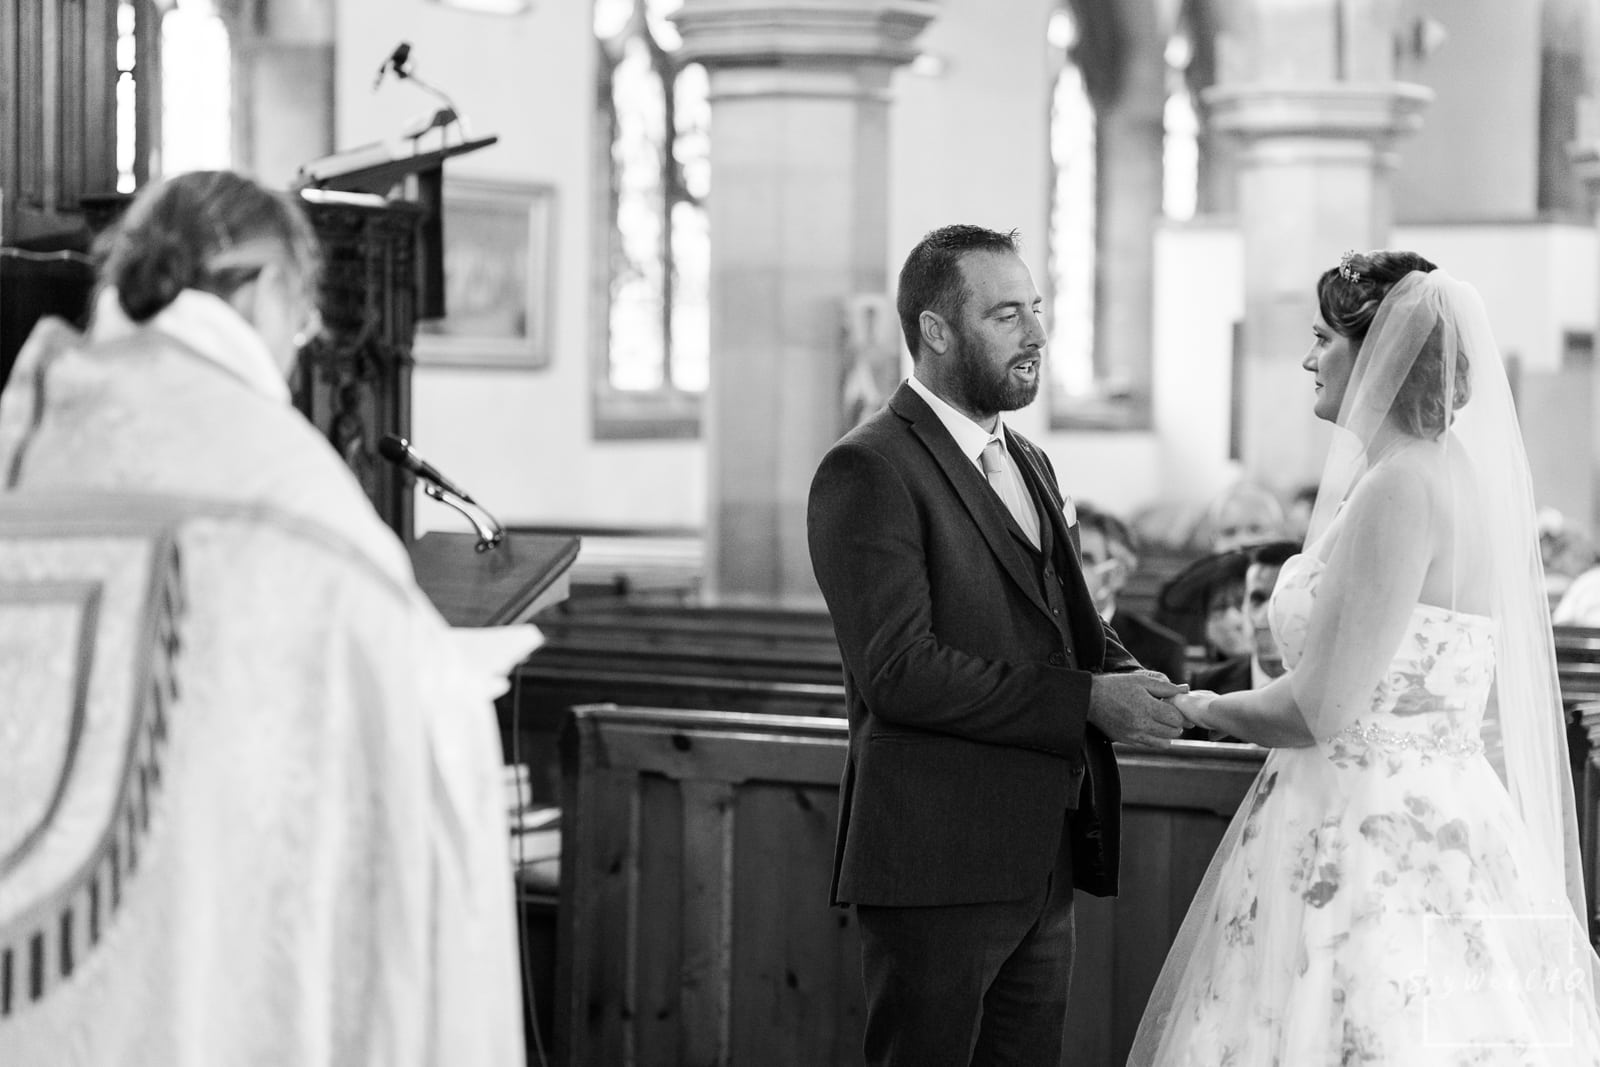 Lincoln Wedding Photography + Spilsby Church Wedding Photographer + Bride and groom exchange wedding rings during their Lincoln Church Wedding